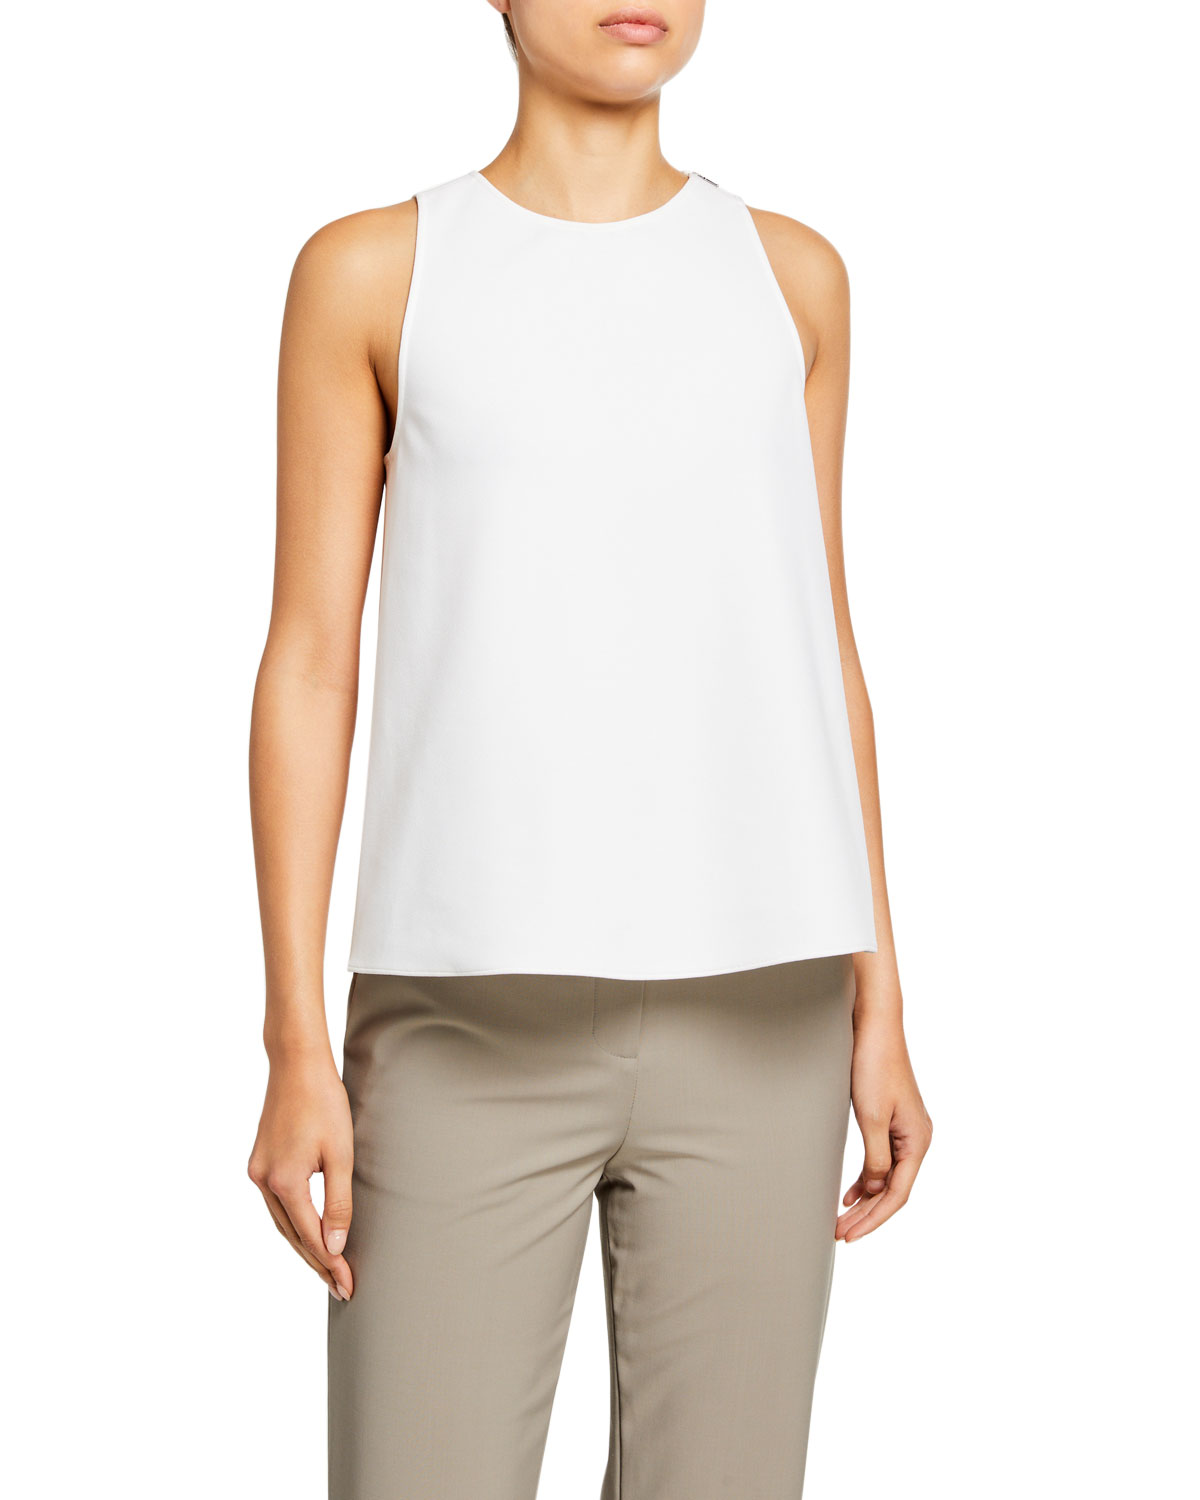 Tibi Tops STRUCTURED CREPE TANK WITH TWIST-BACK DETAIL